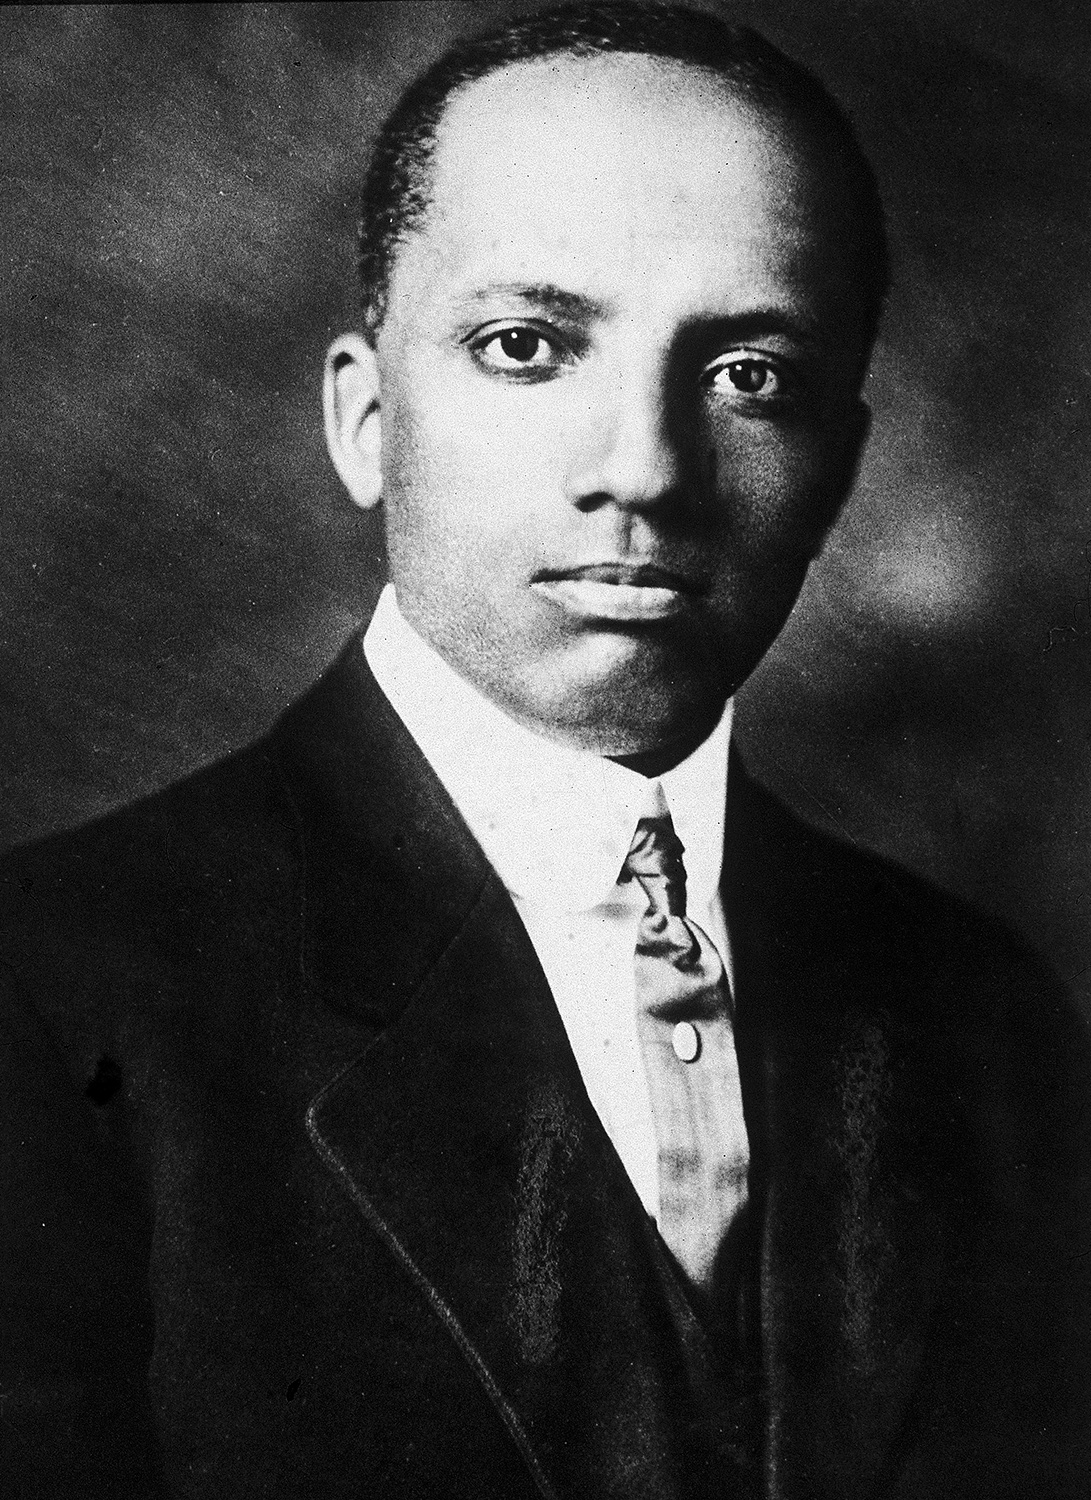 Feb. 7, 1926: Carter Godwin Woodson Initiates First Negro History Week